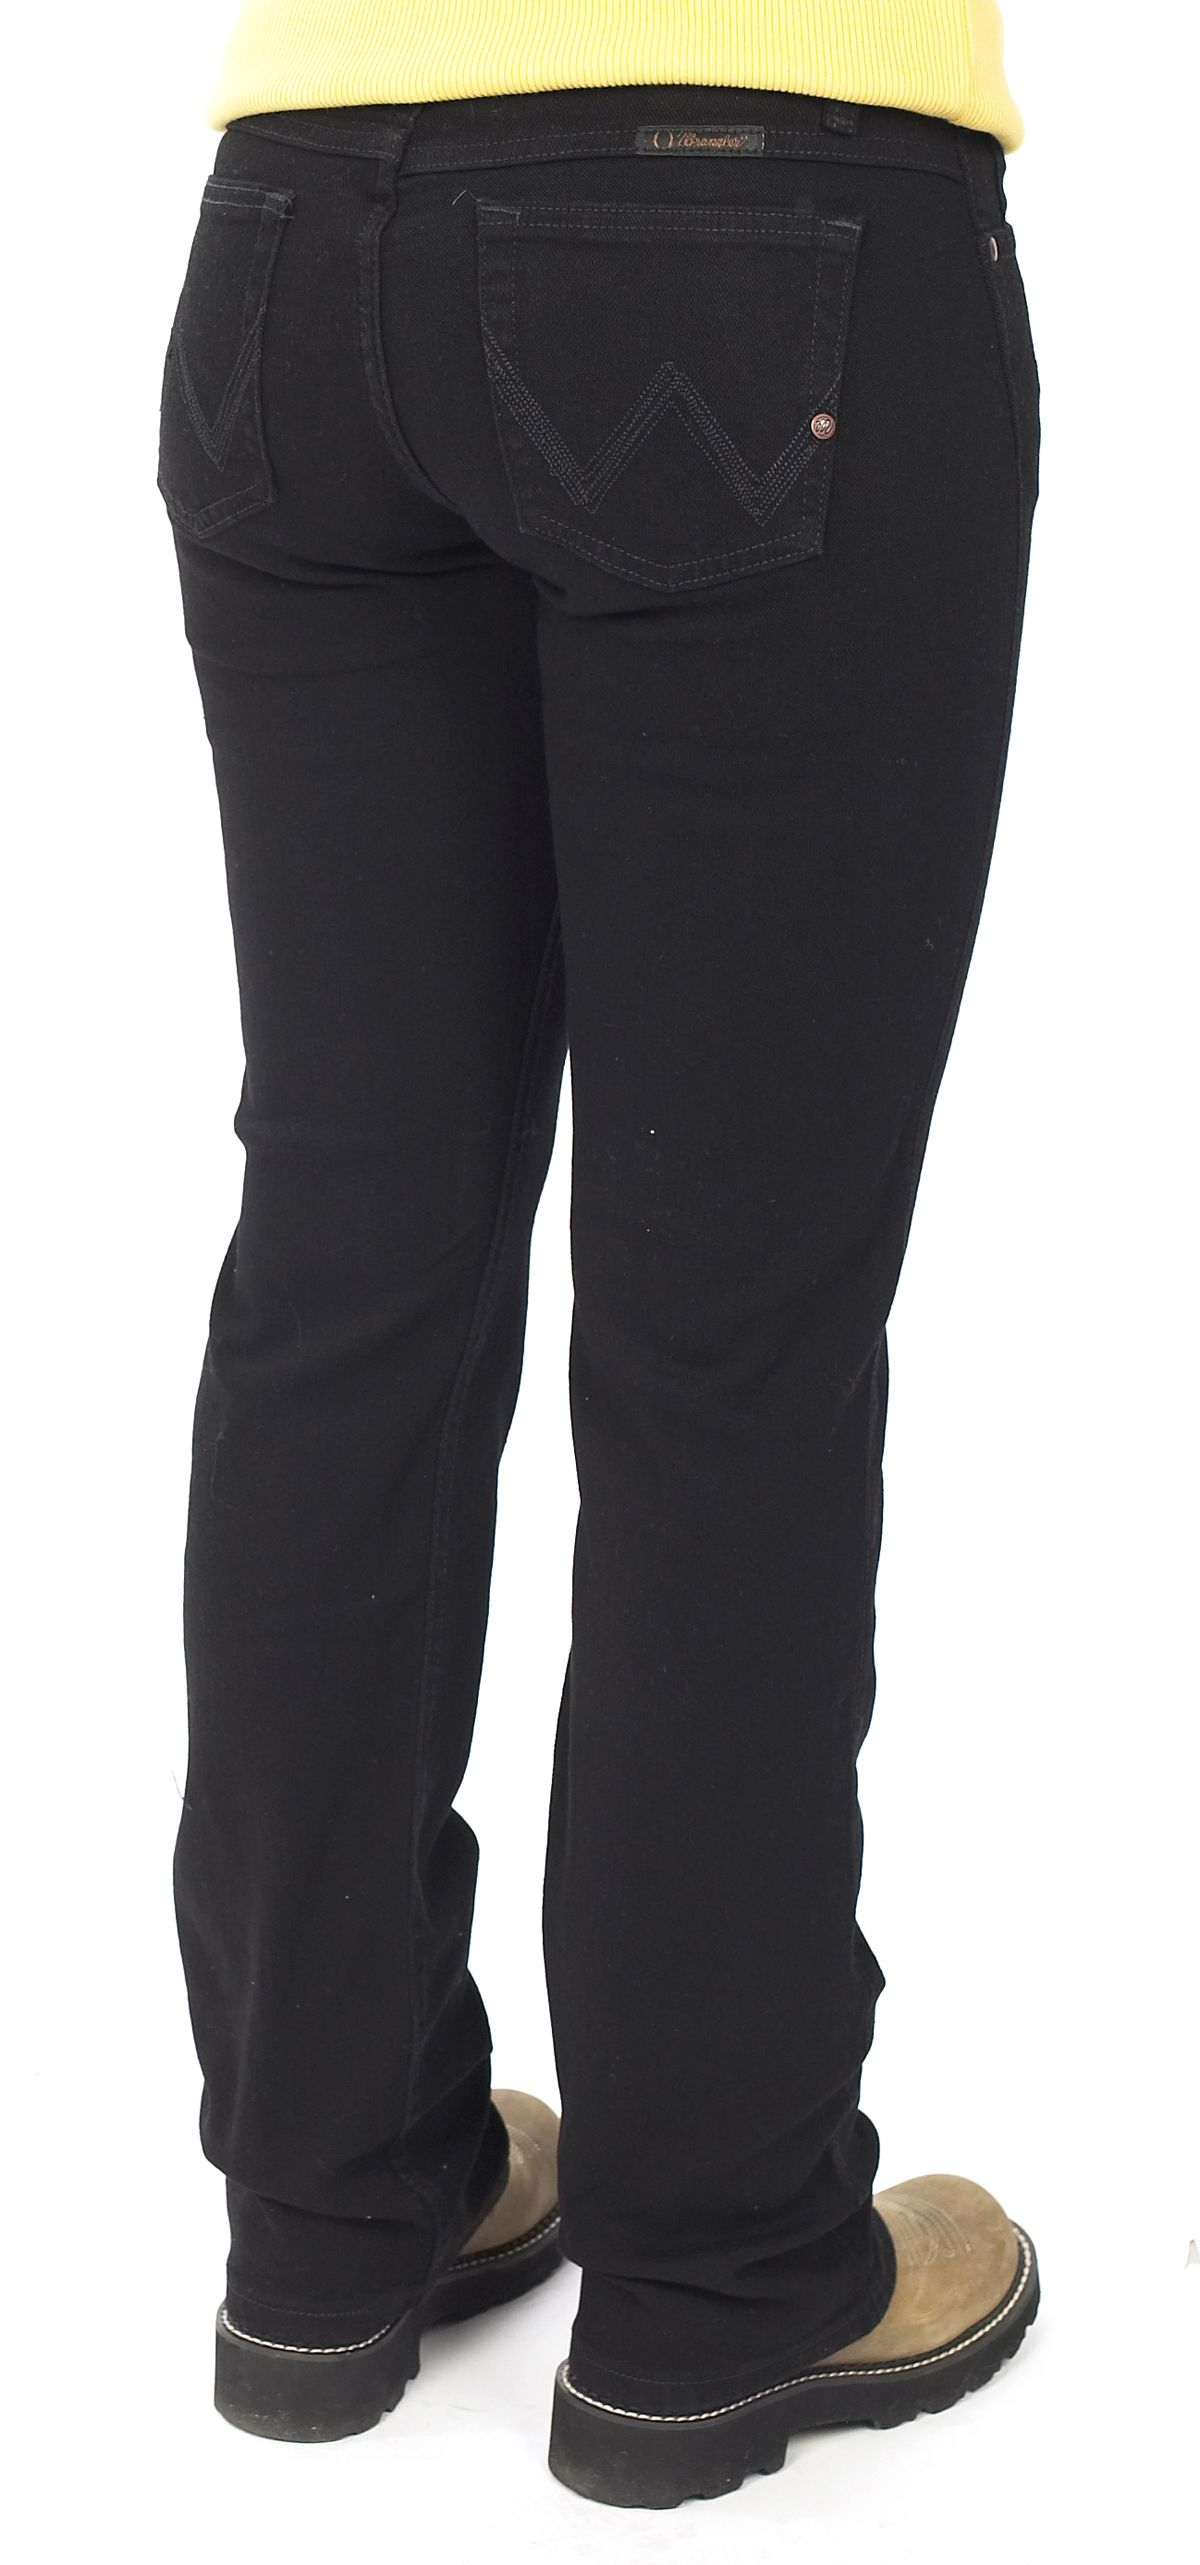 87299c8f2cc Q-Baby Ultimate Riding Womens Jeans